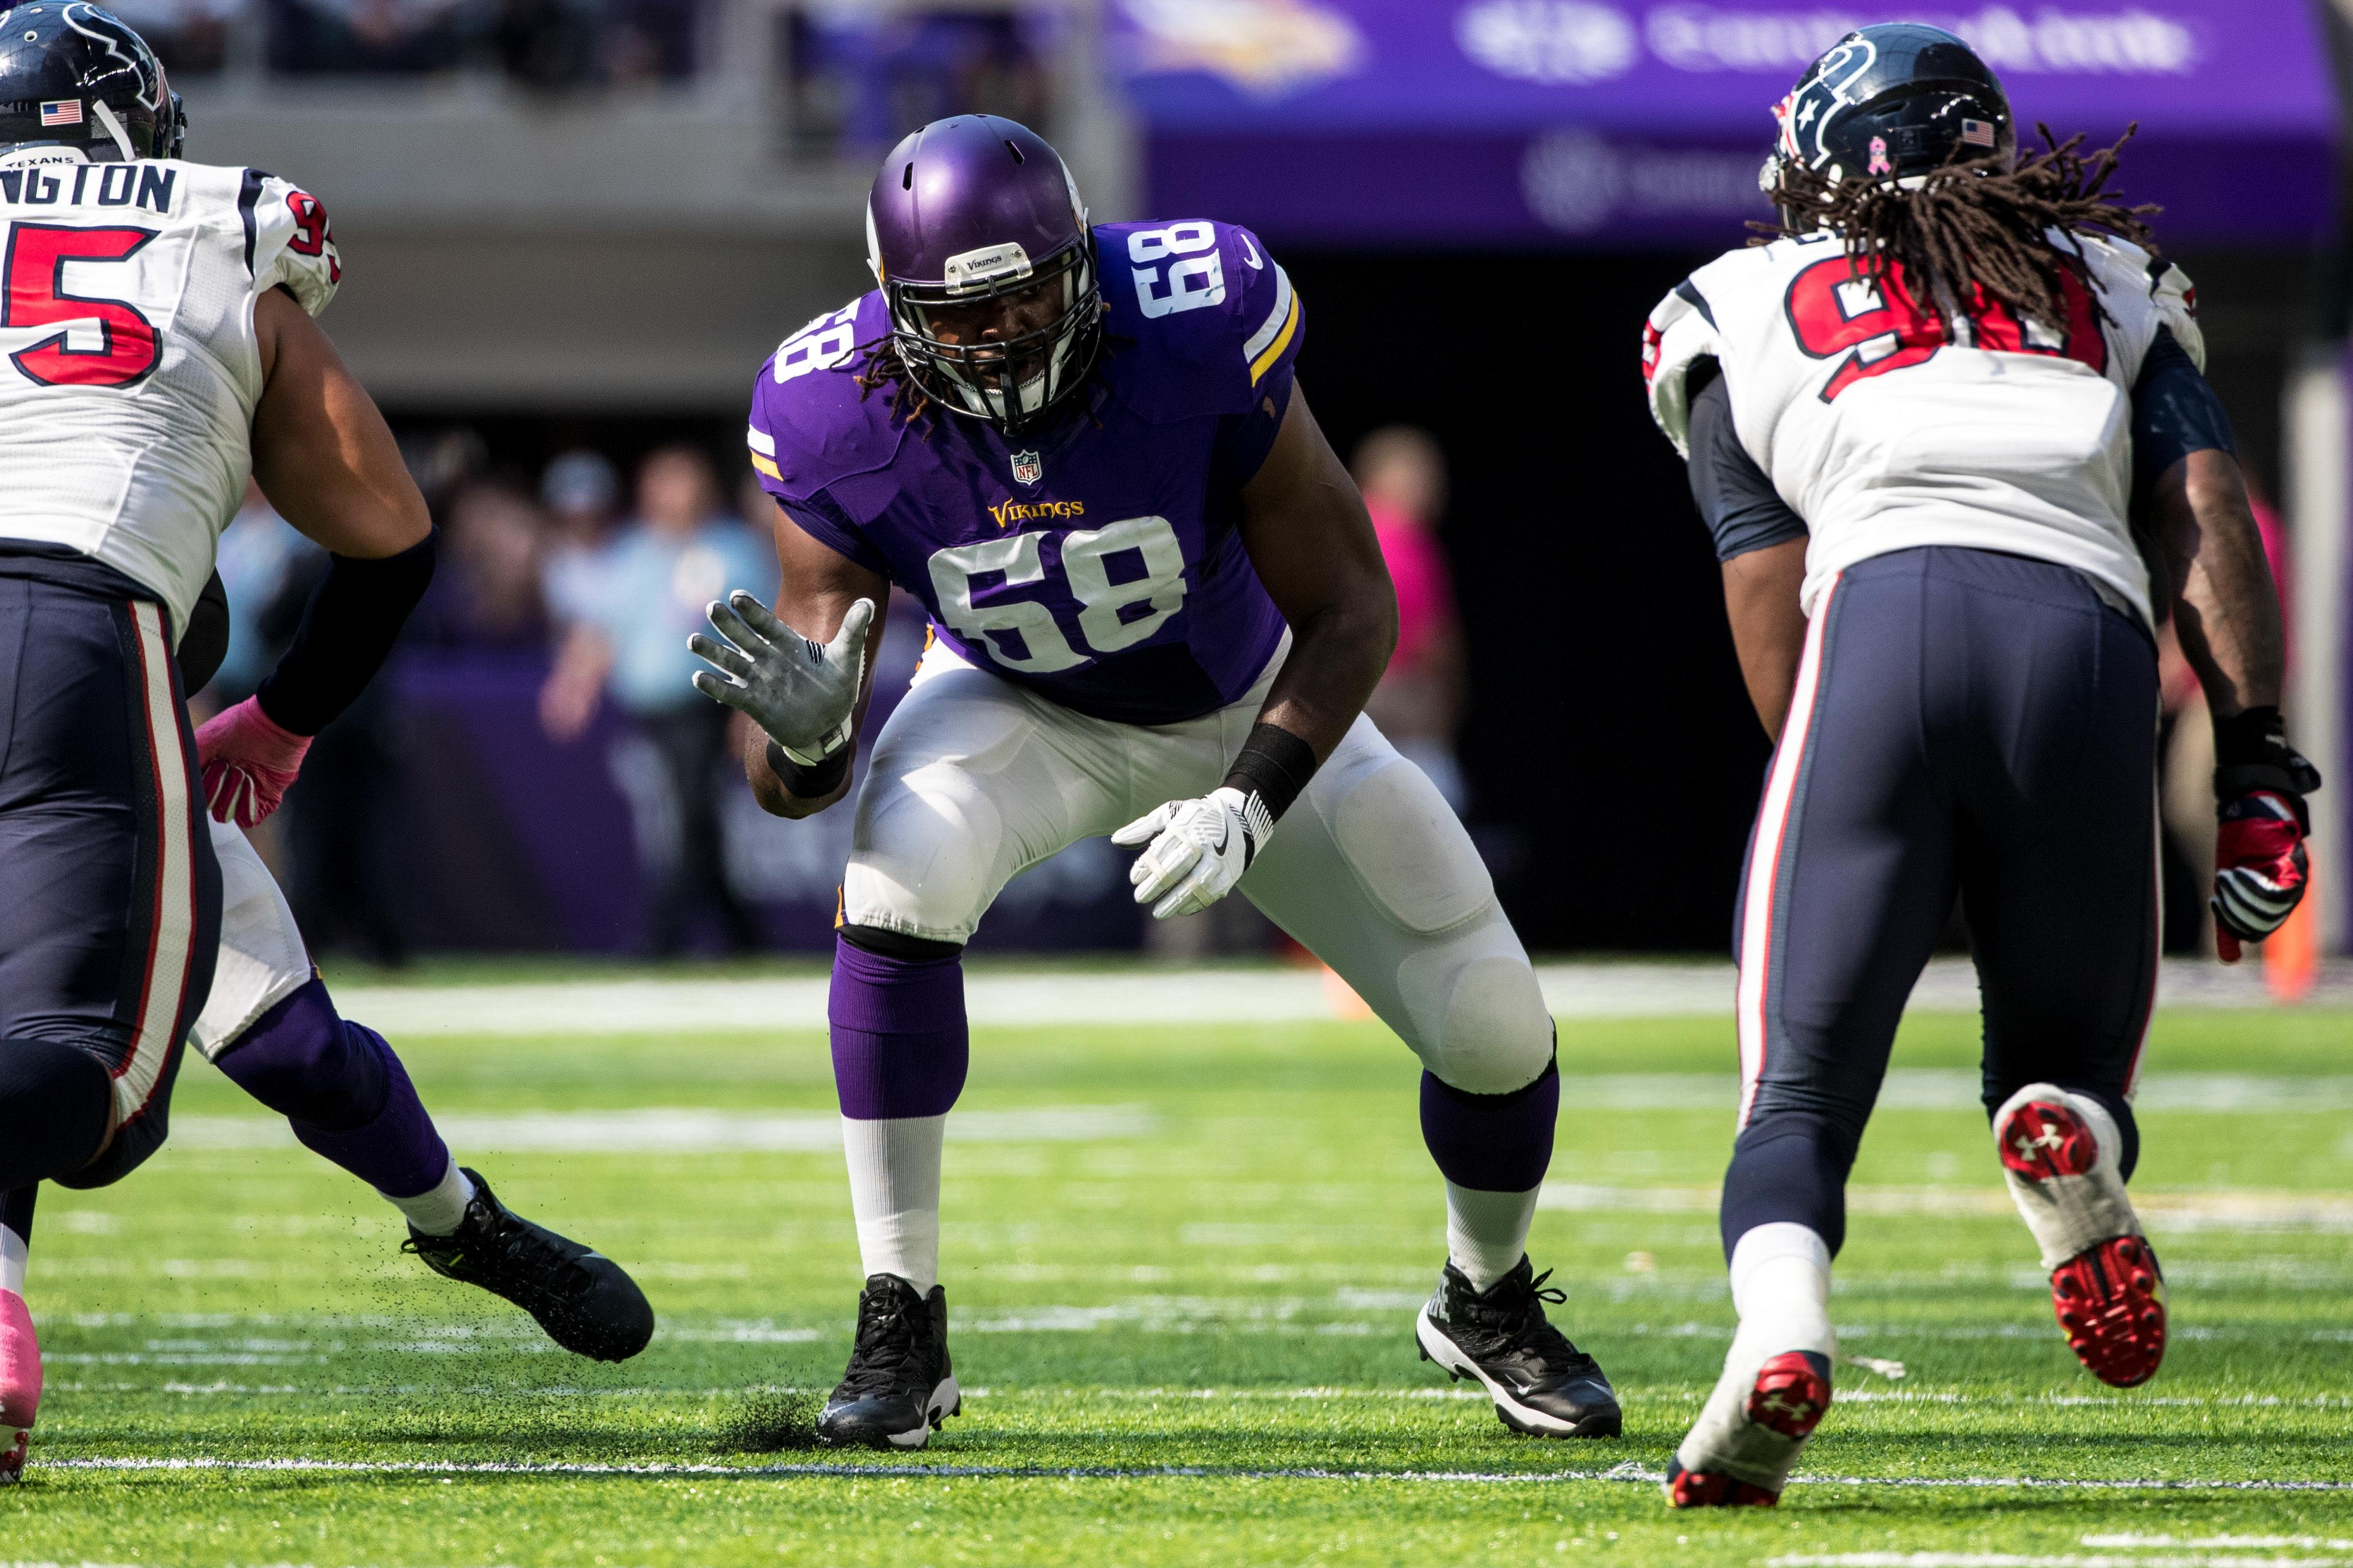 9601276-nfl-houston-texans-at-minnesota-vikings